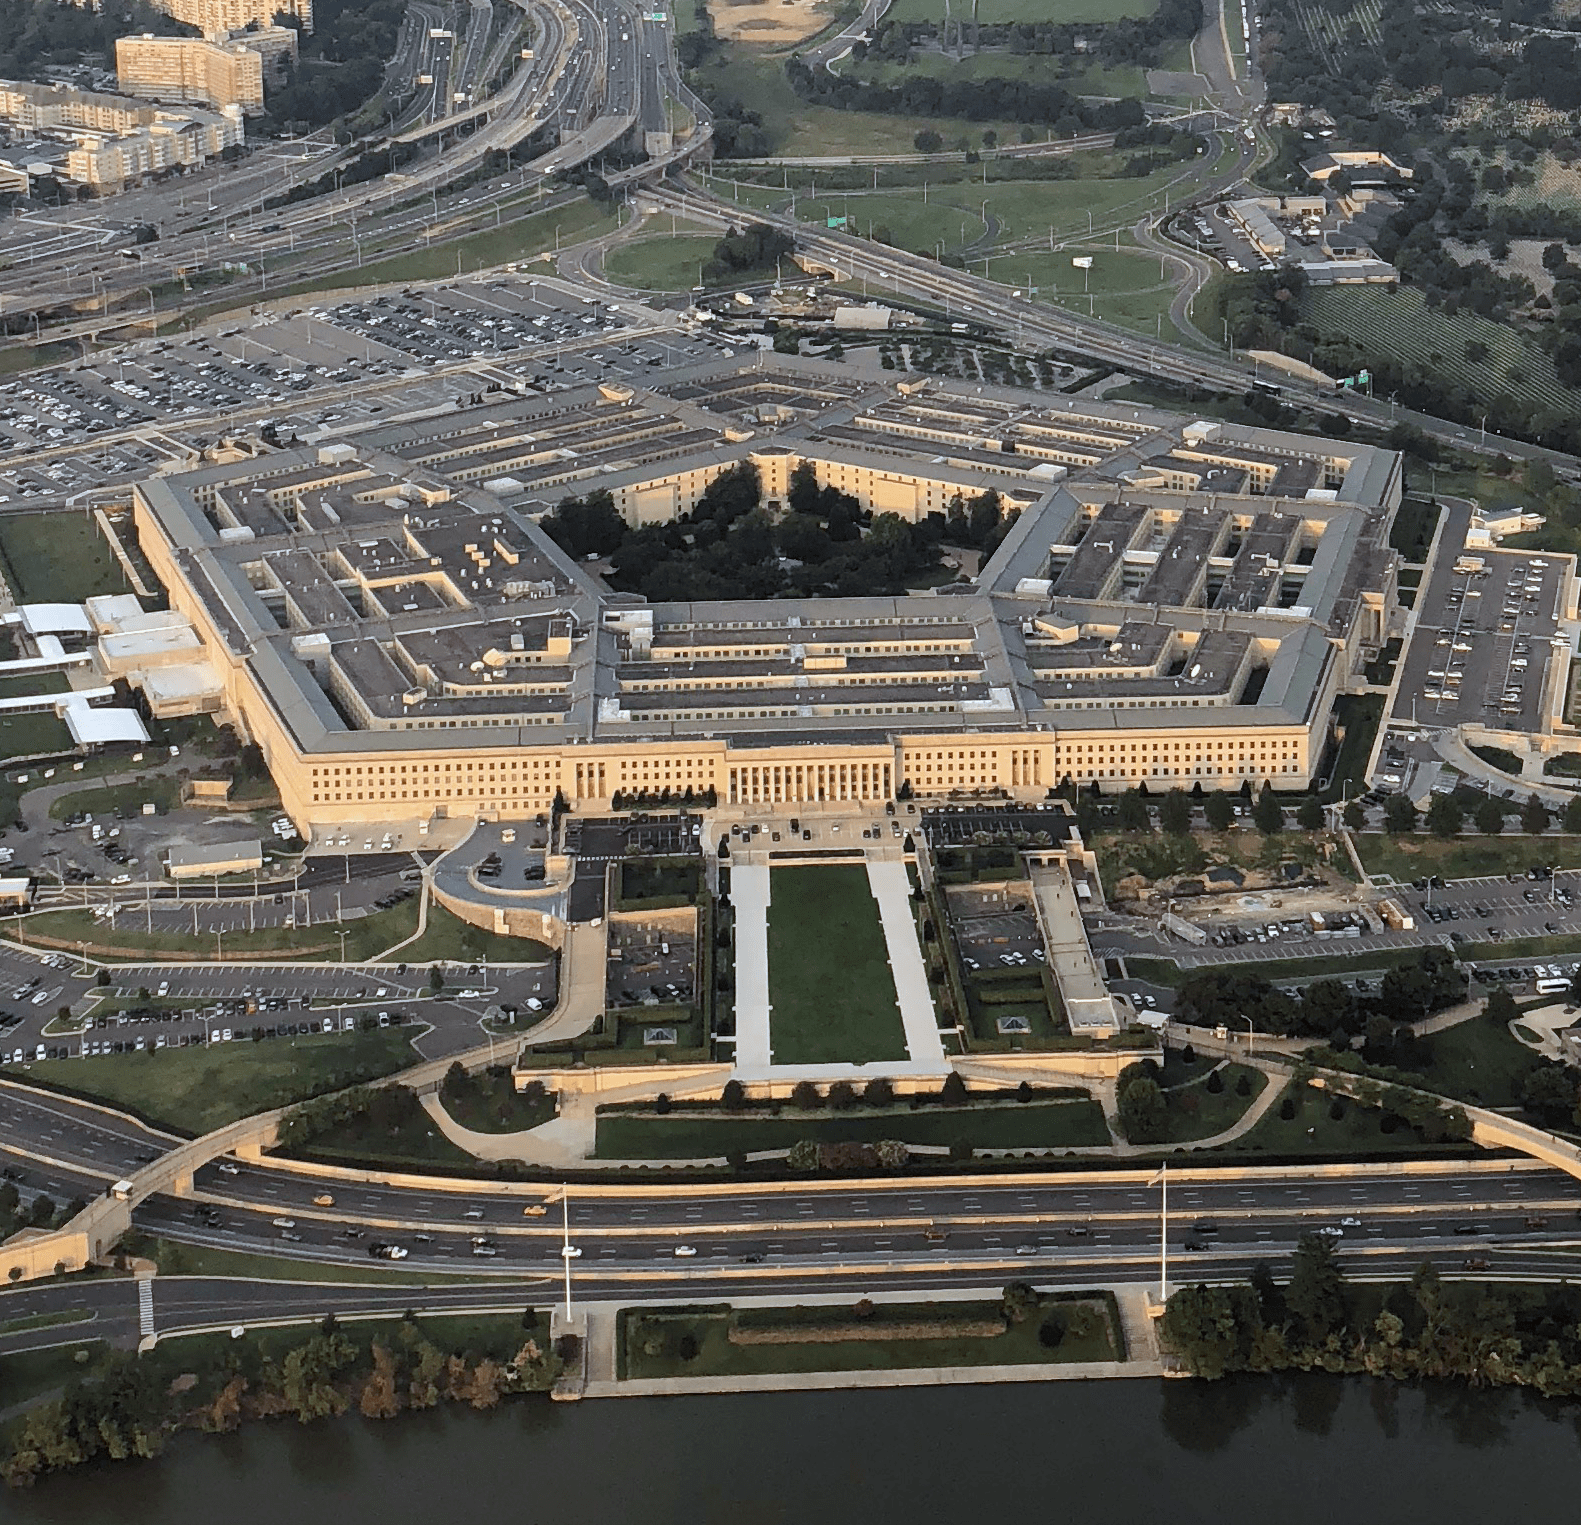 https://upload.wikimedia.org/wikipedia/commons/2/2a/The_Pentagon%2C_cropped_square.png